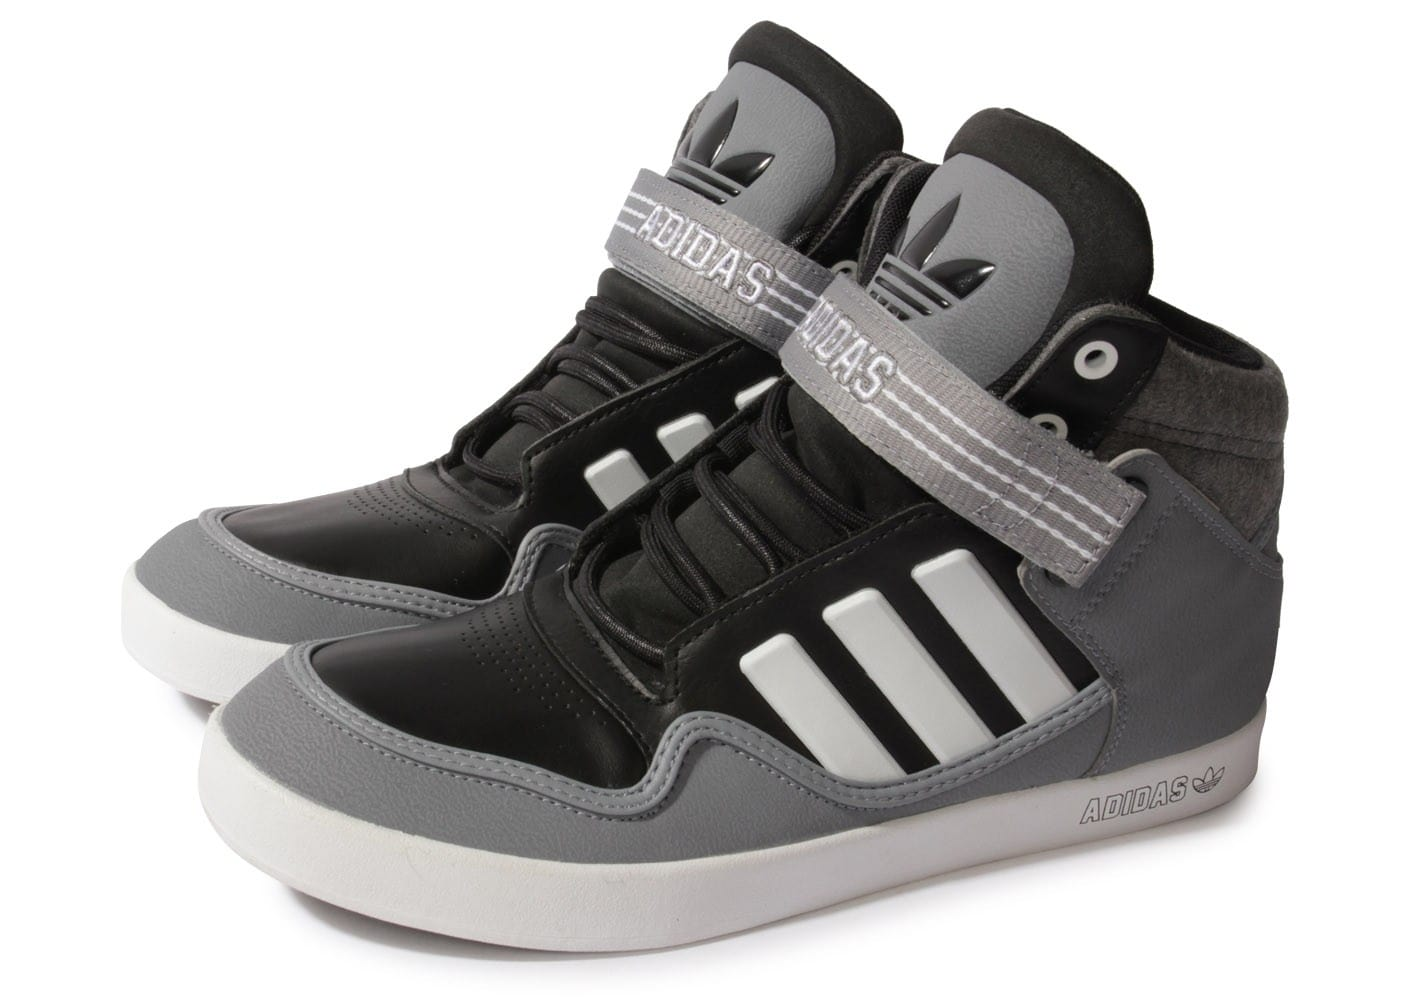 adidas Adi rise 2.0 Noire Grise Chaussures Baskets homme